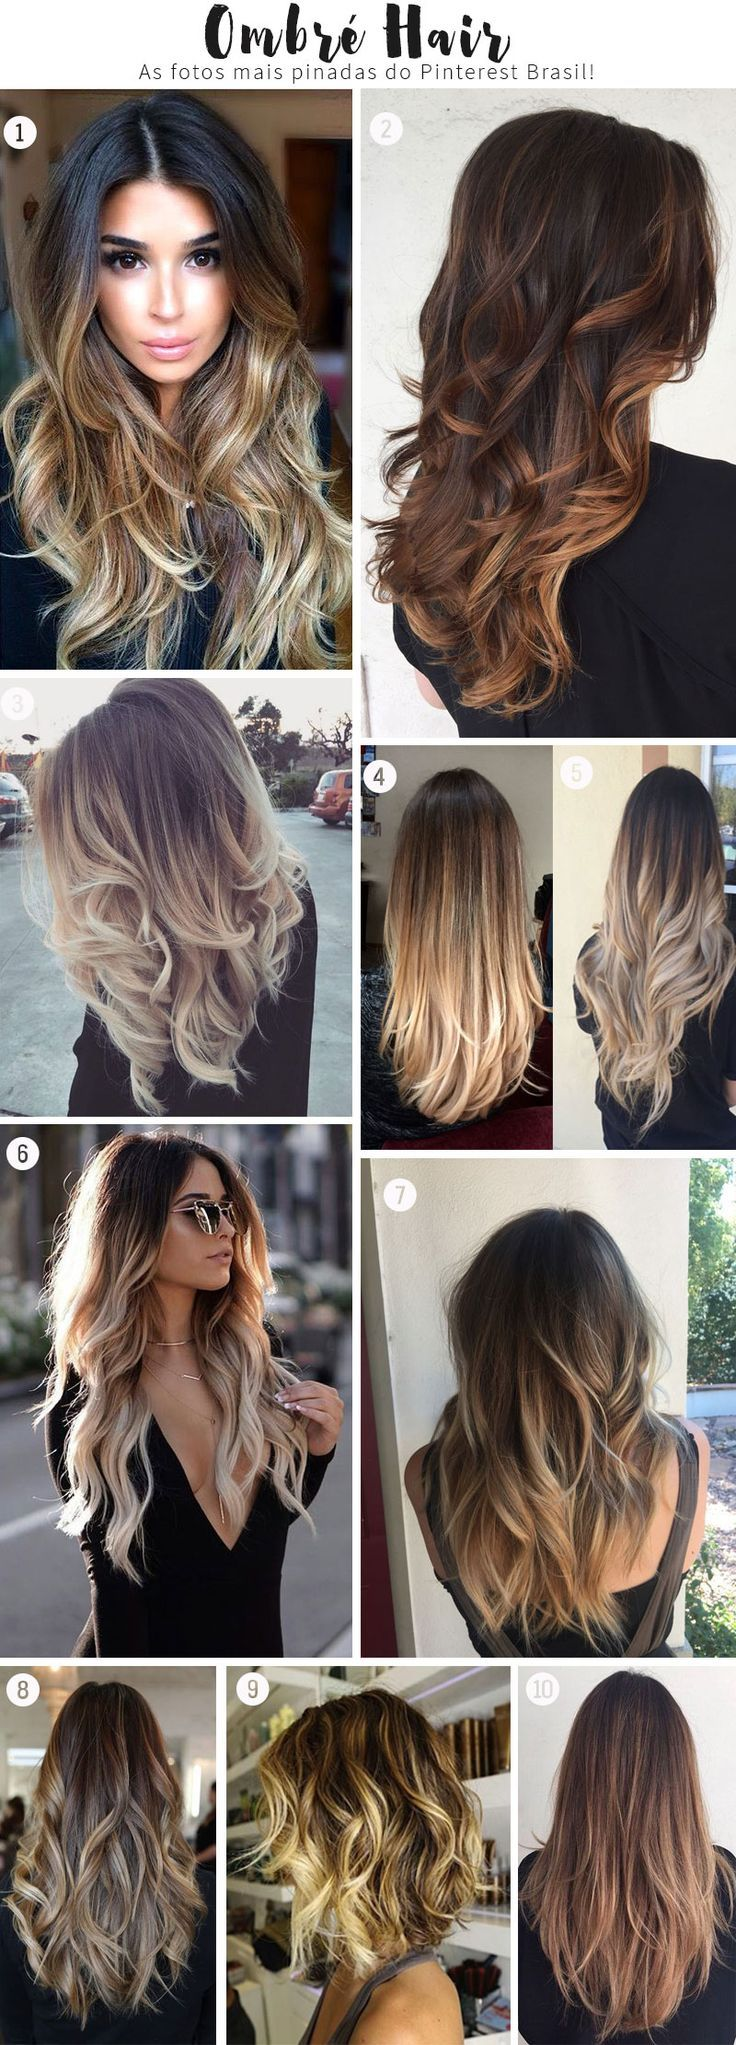 Best Ombre Hair - 41 Vibrant Ombre Hair Color Ideas Best Ombre Hair - 41 Vibrant Ombre Hair Color Ideas Ombre Hair pink and purple ombre hair